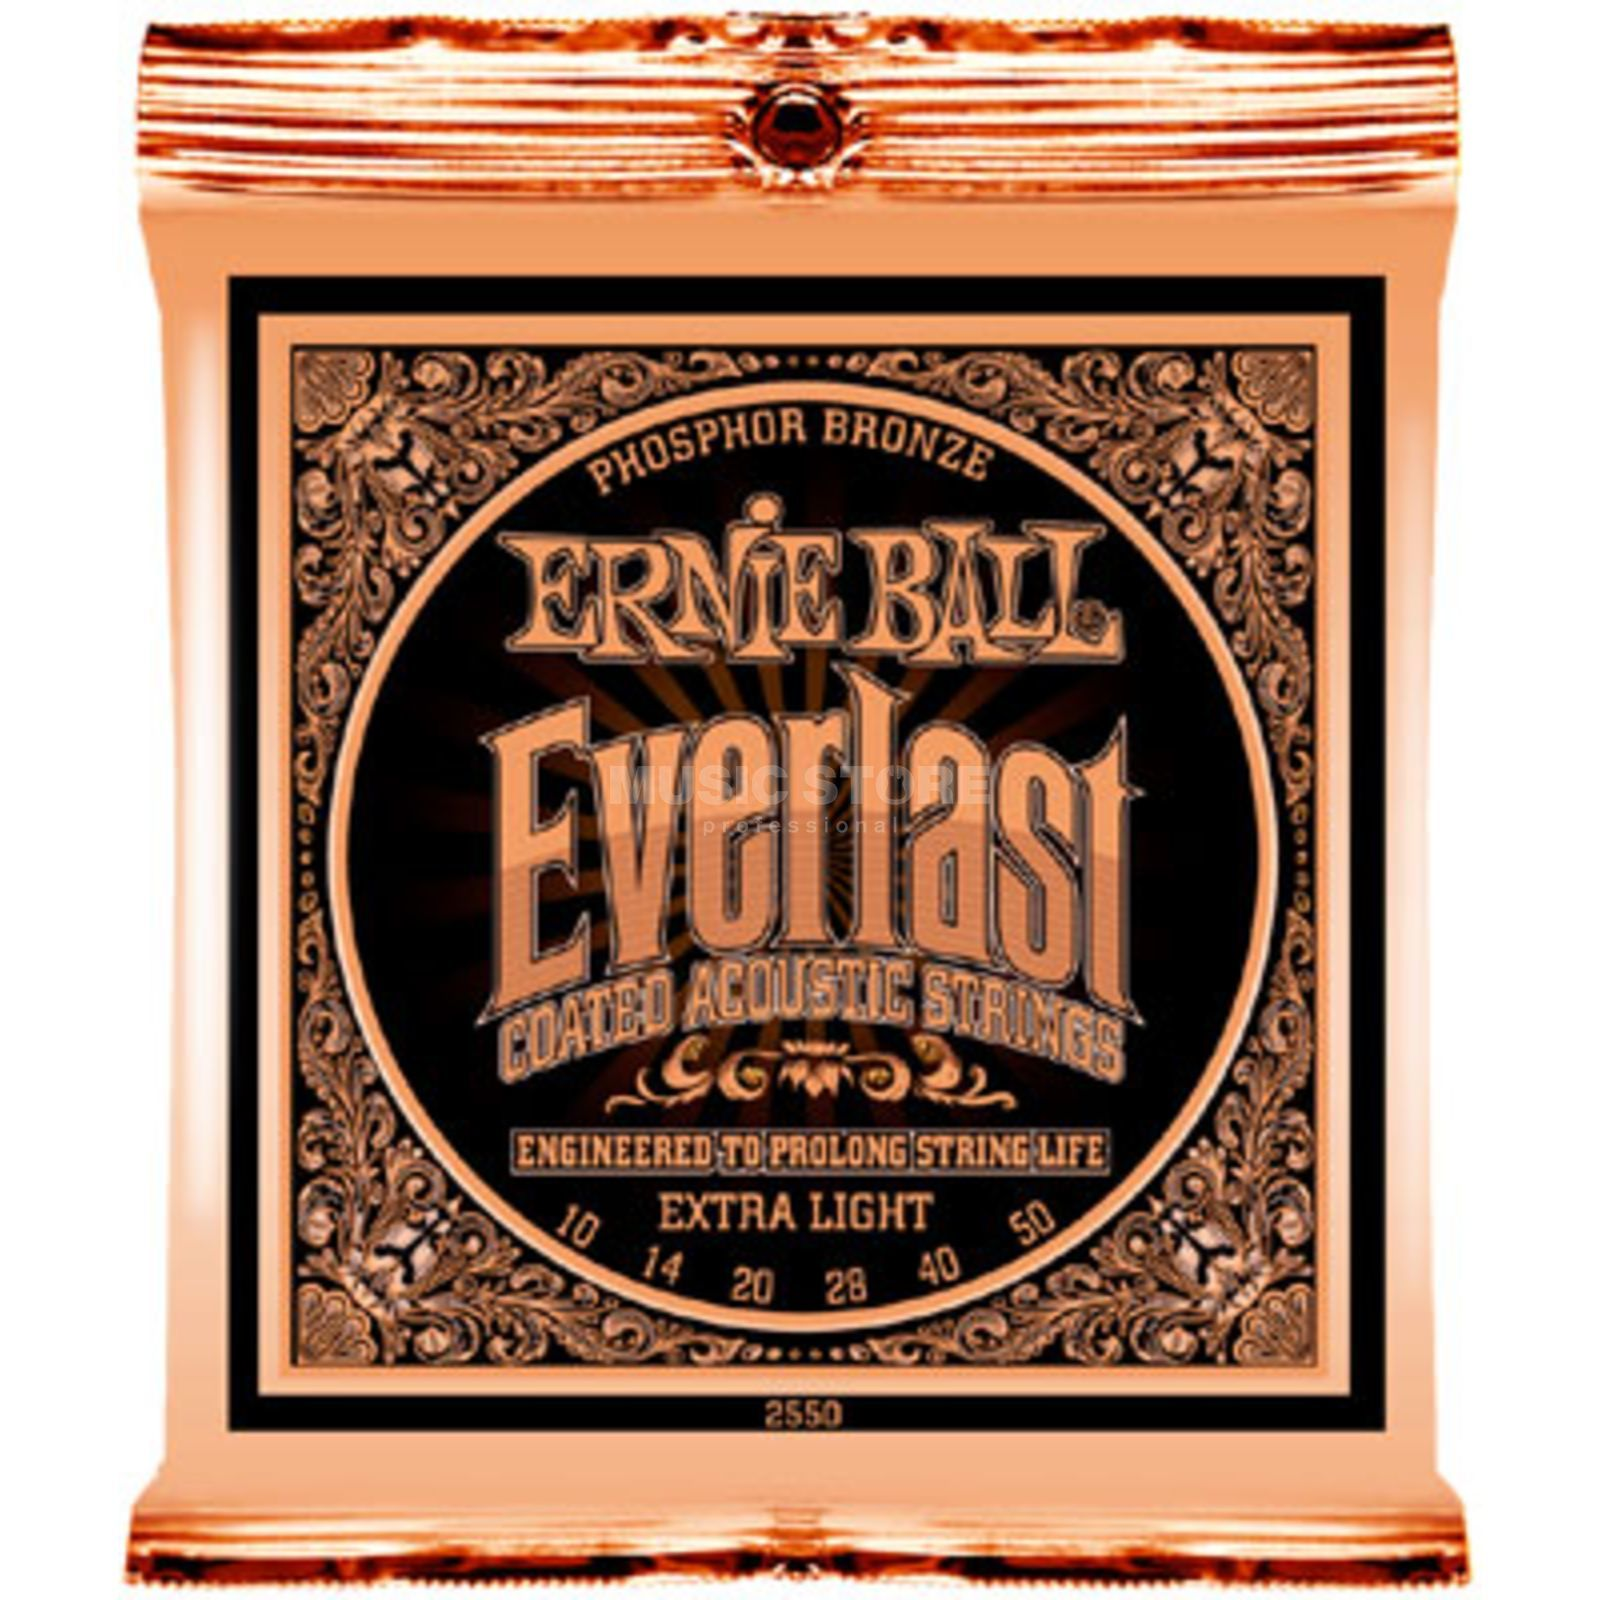 Ernie Ball A-Guit. Strings 10-50 Everlast Phosphor Bronze, EB2550 Produktbillede